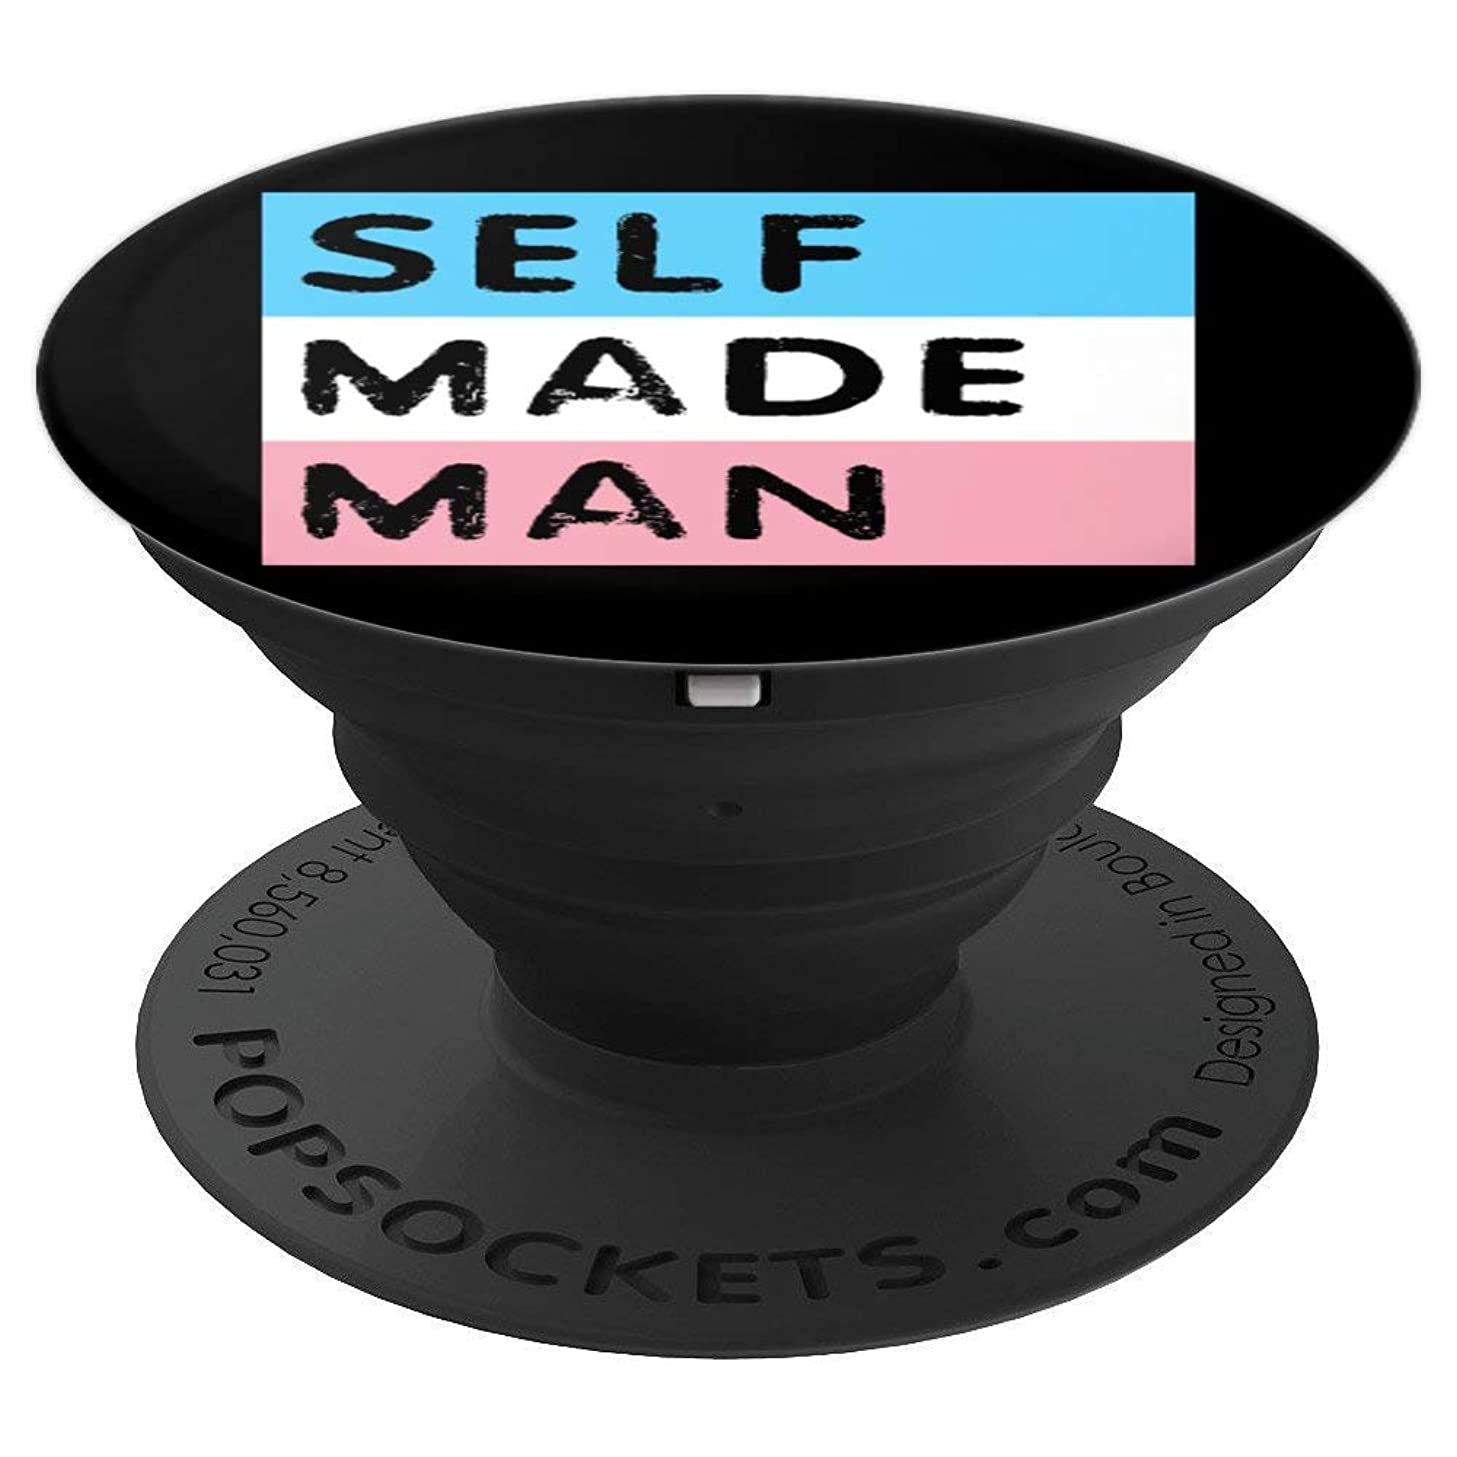 Self Made Man Trans Pride Black Transgender Gift for Men - PopSockets Grip and Stand for Phones and Tablets